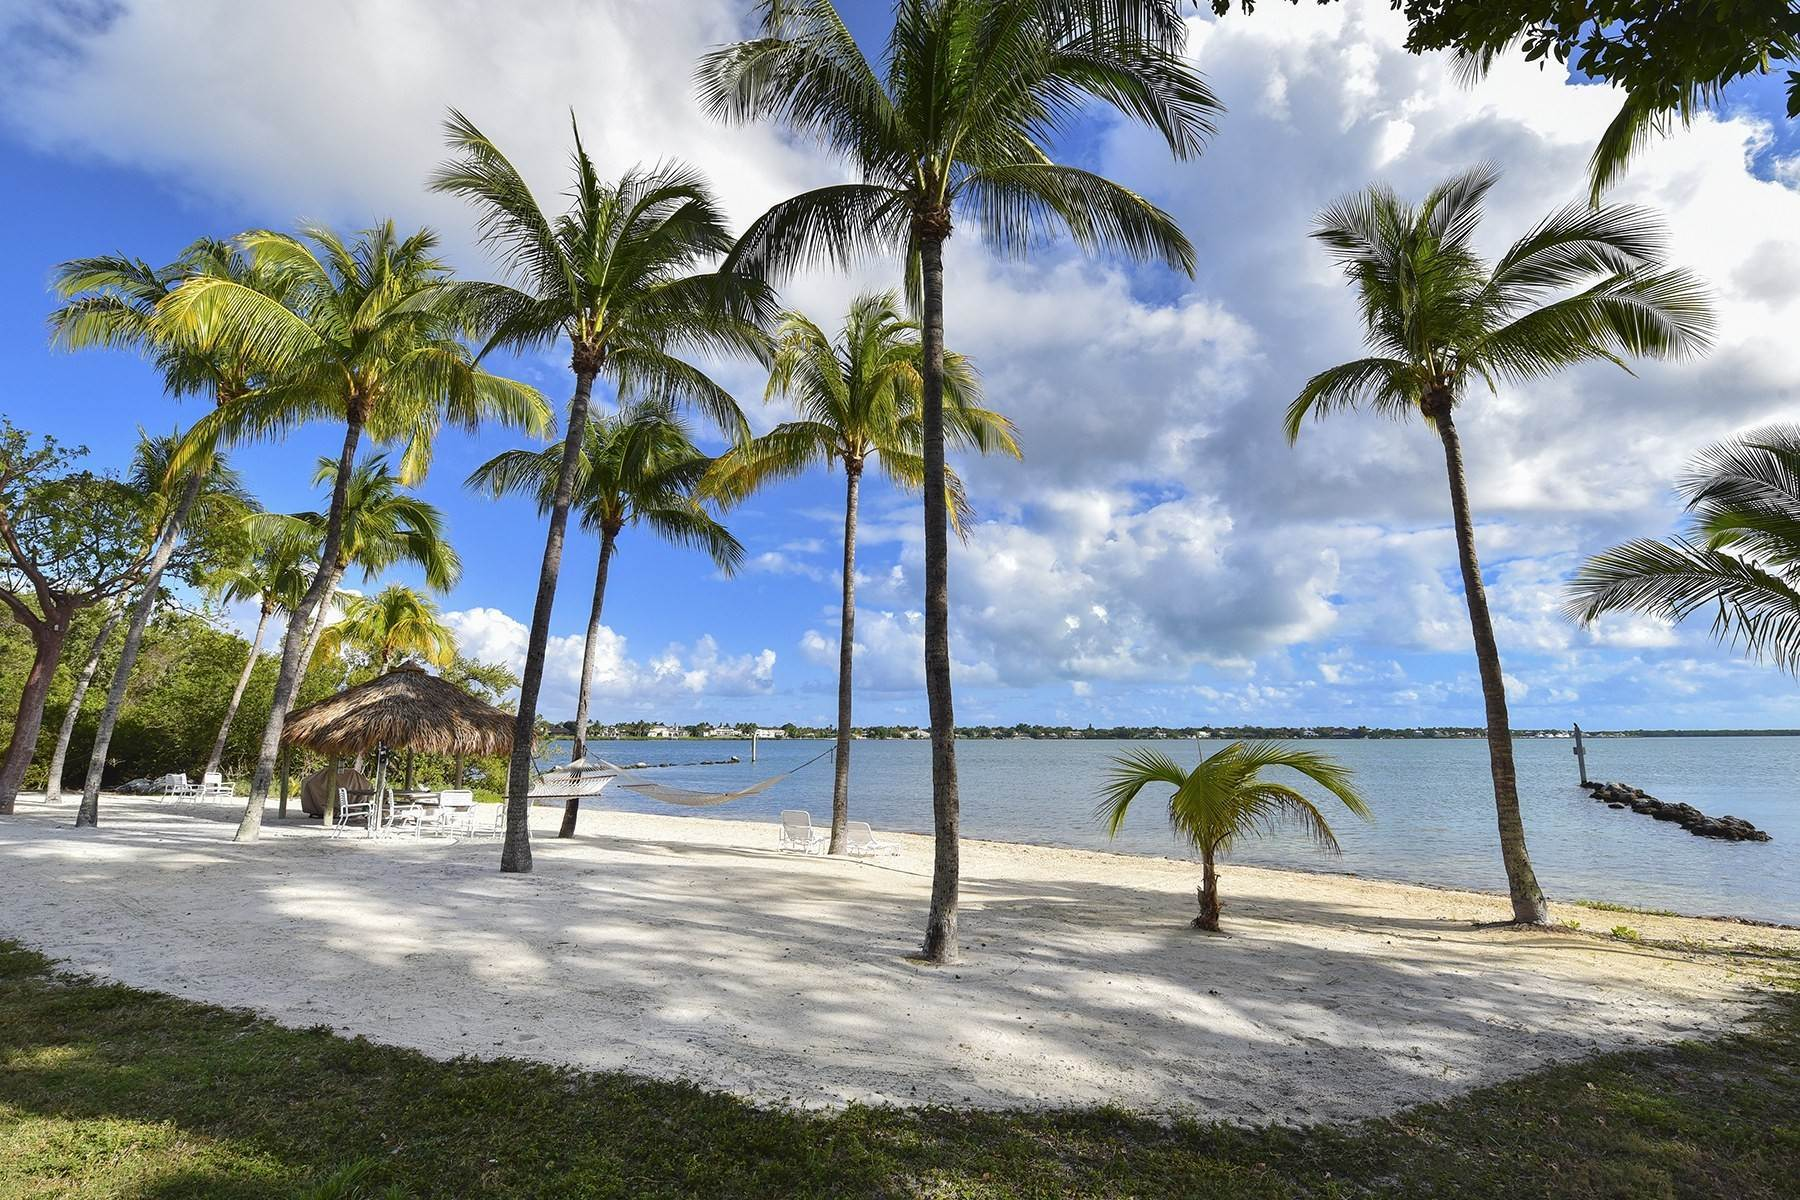 Property for Sale at 10 Cannon Point, Key Largo, FL 10 Cannon Point Key Largo, Florida 33037 United States